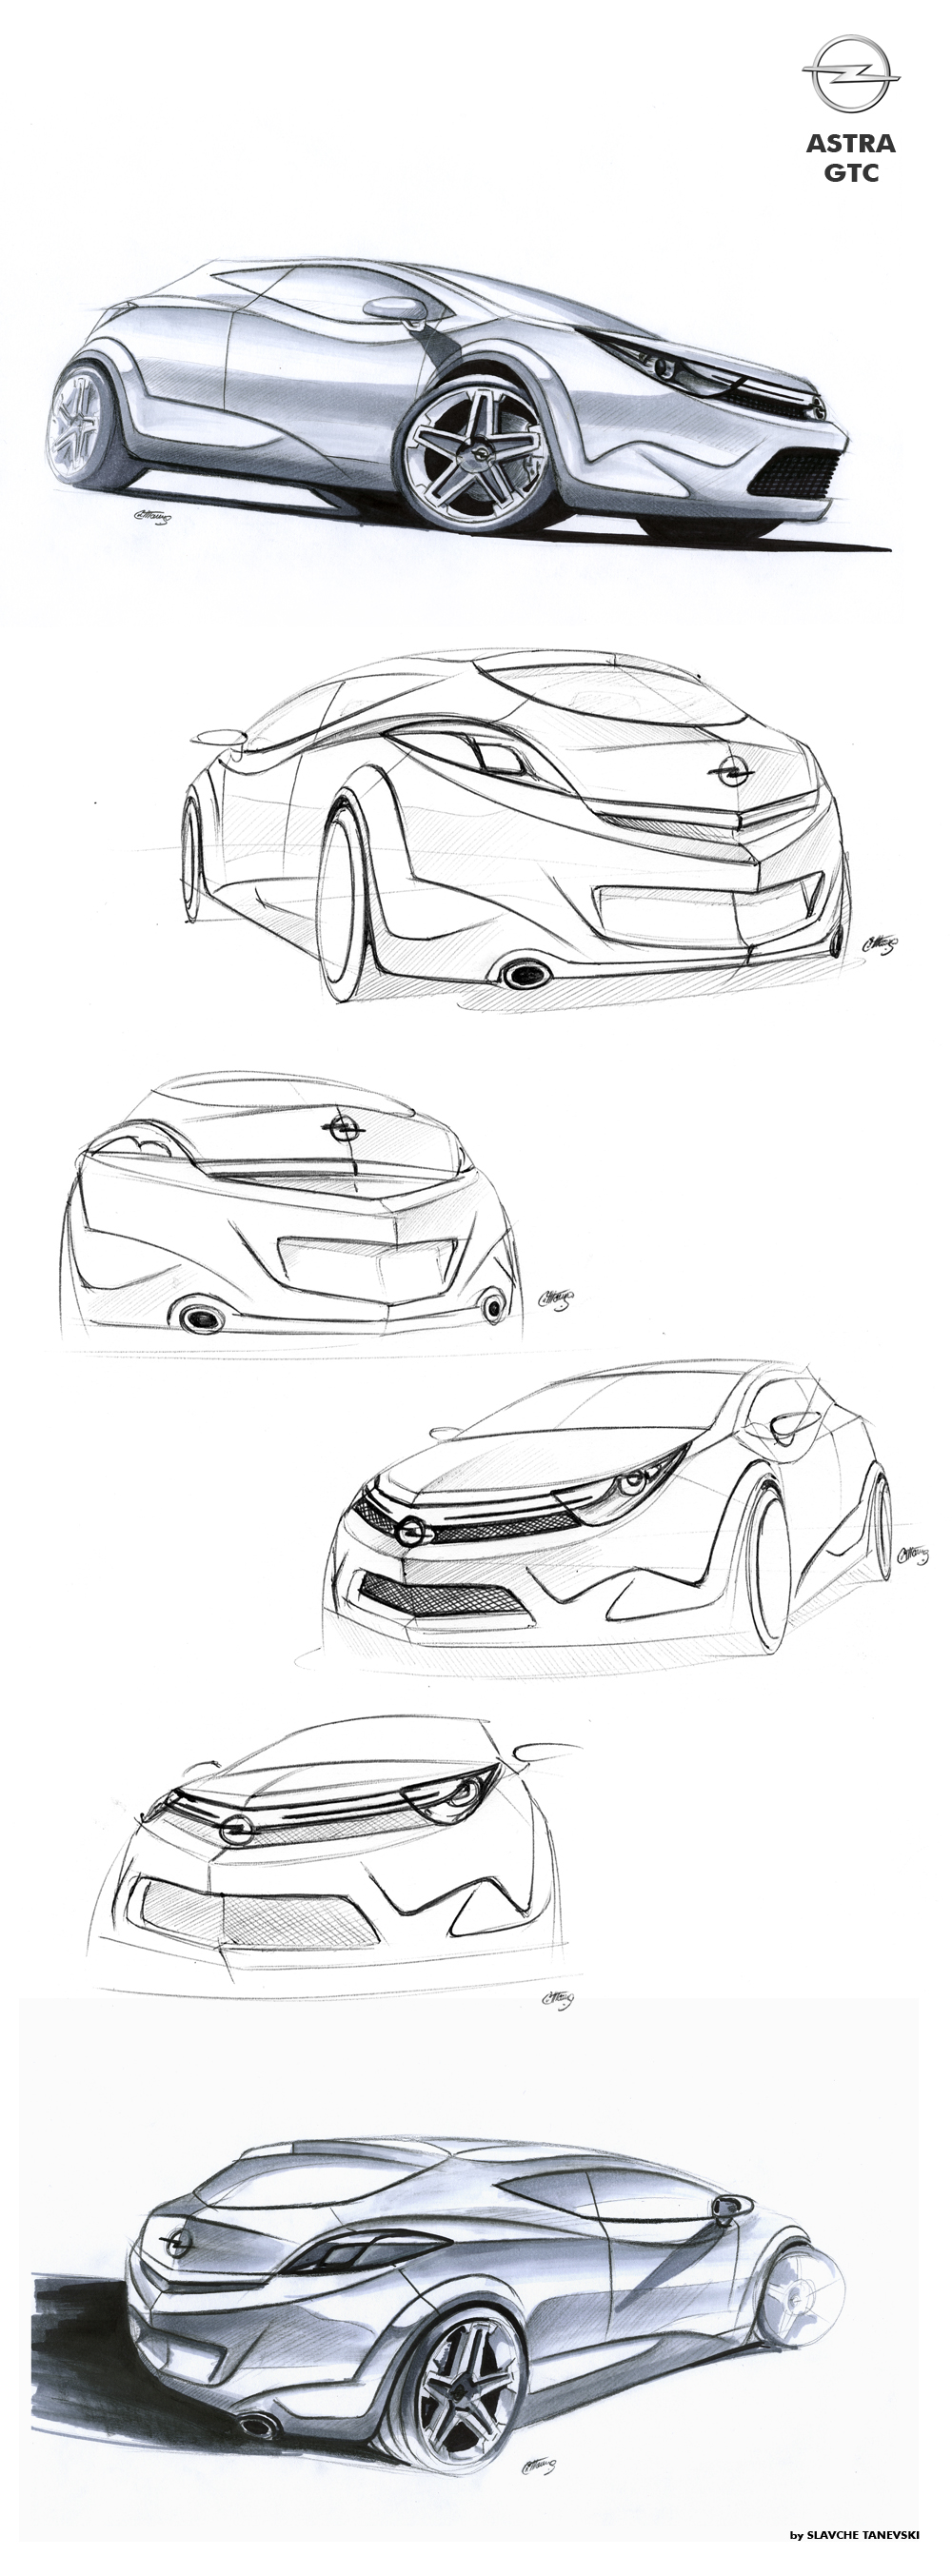 Opel Astra GTC sketches by Slavche